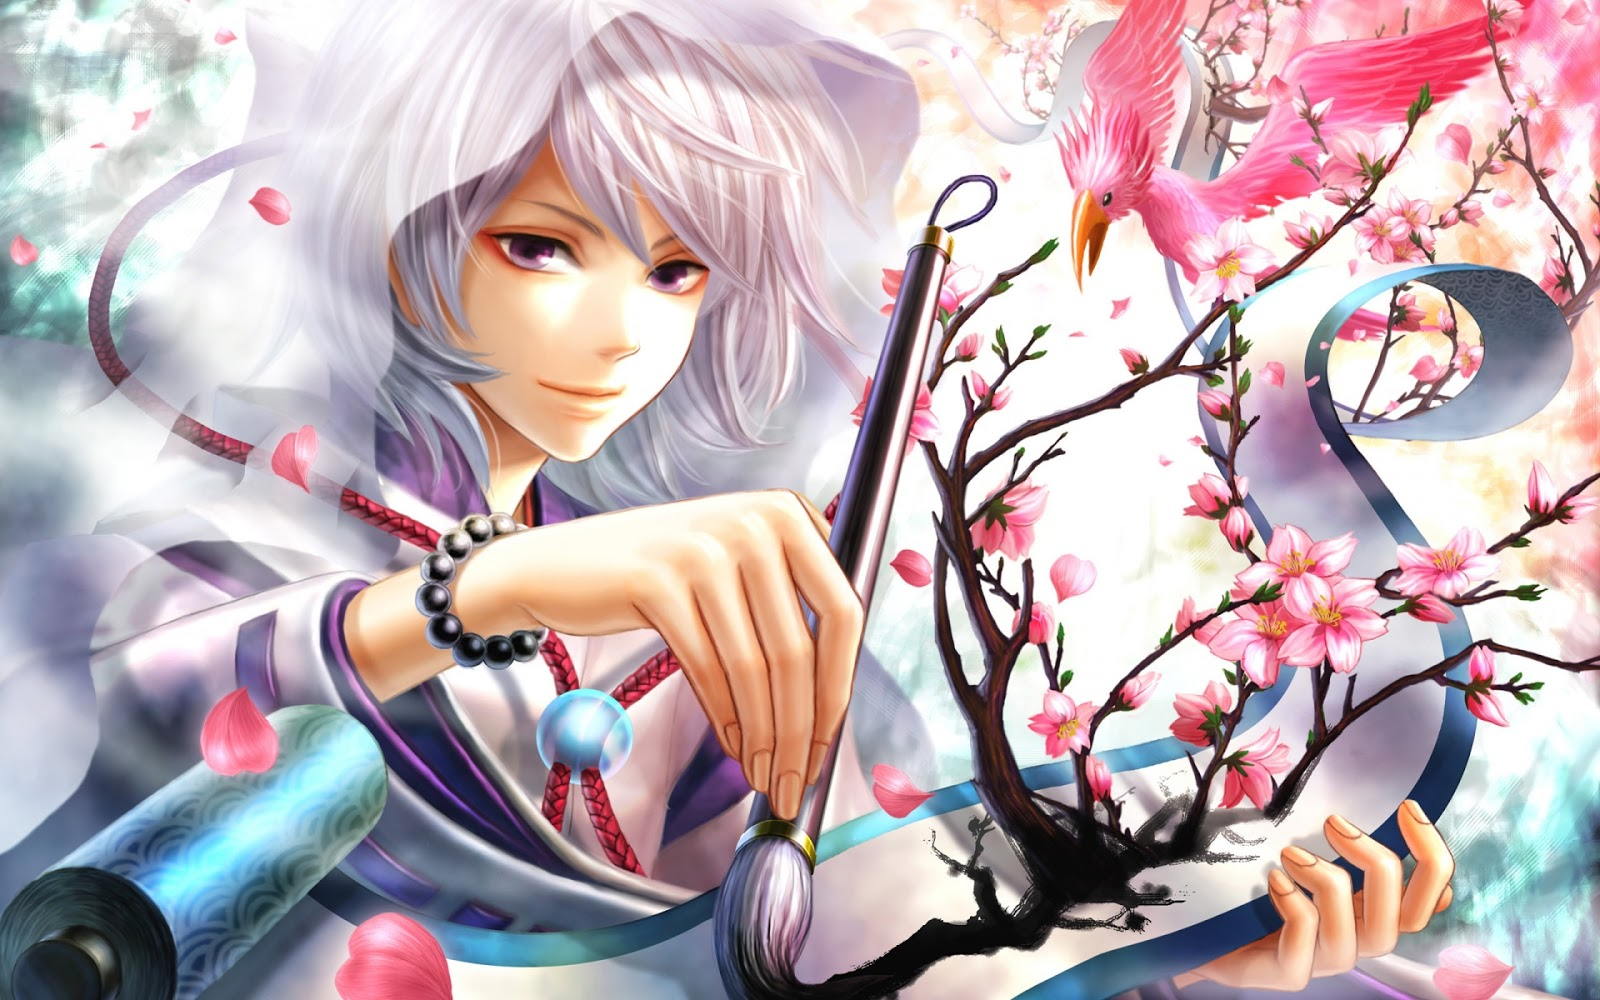 Cute Guy Artist Painting Flowers White Hair Anime HD Wallpaper Desktop 1600x1000